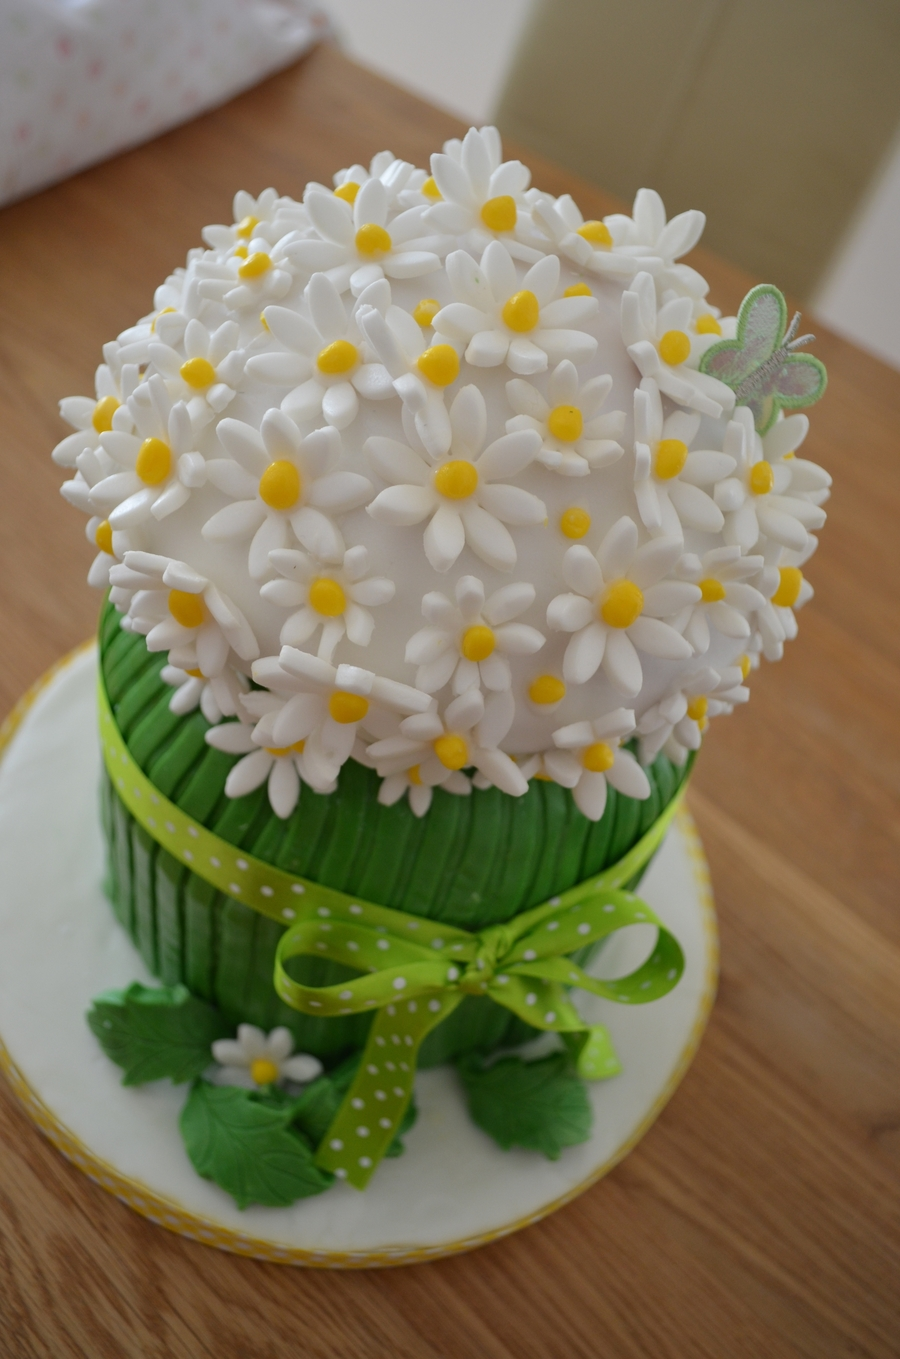 Cake Decorating How To Make Daisies : Springtime Daisy Cake - CakeCentral.com